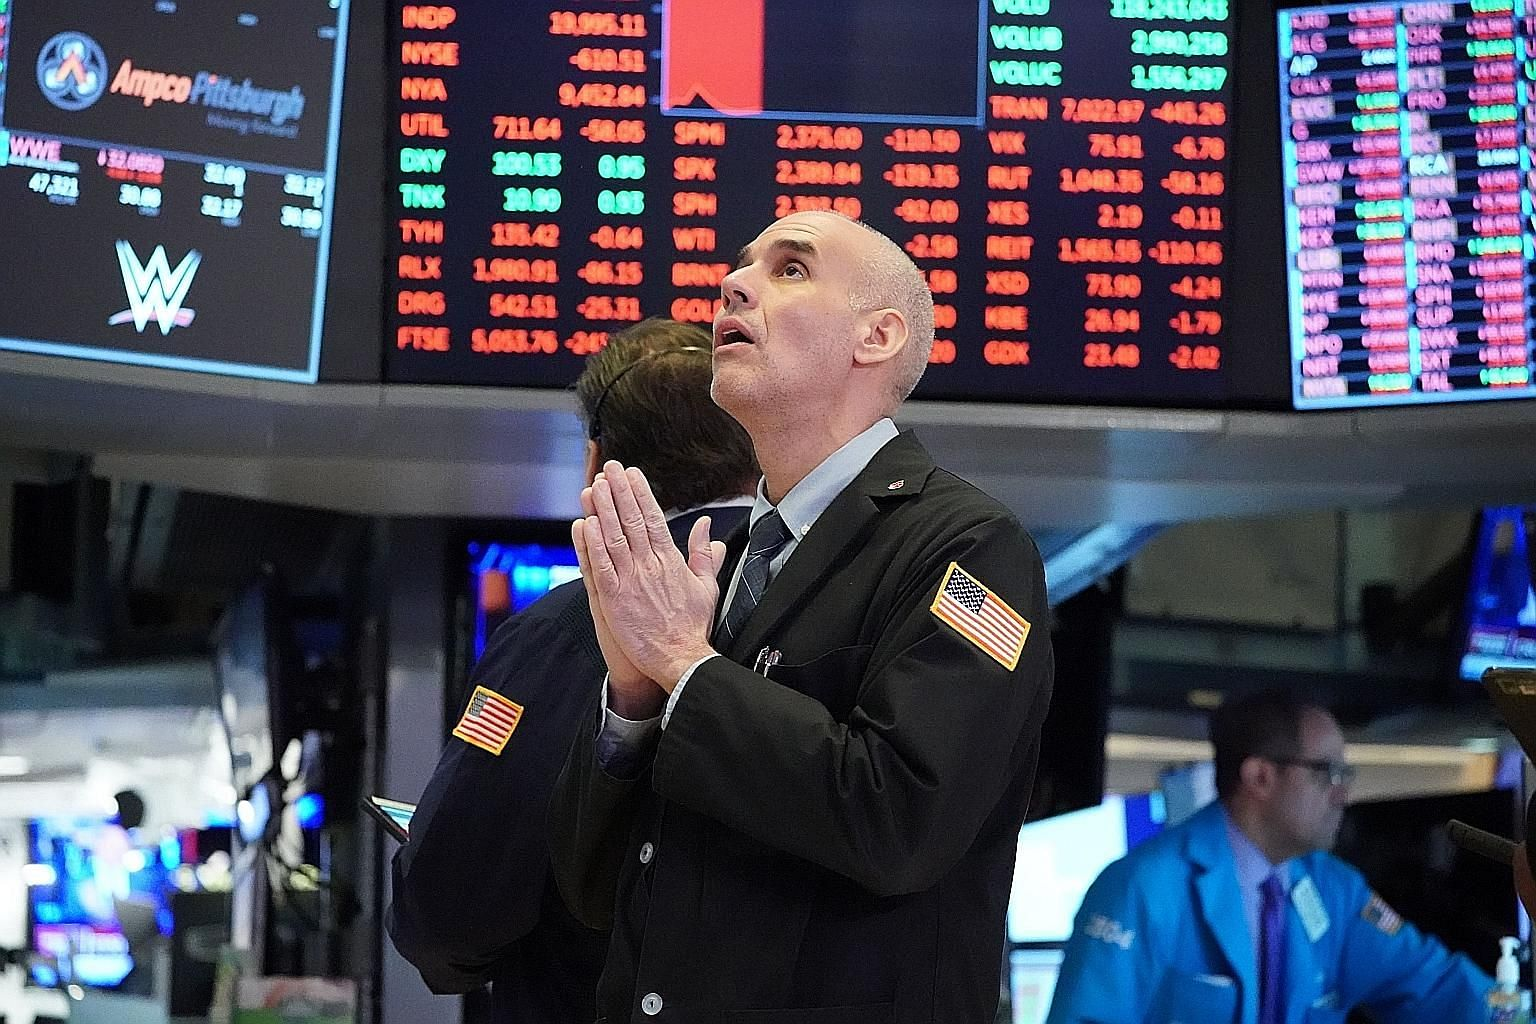 Traders on the floor of the New York Stock Exchange in March. The big market moves since March have been sector-driven, in particular technology and healthcare.